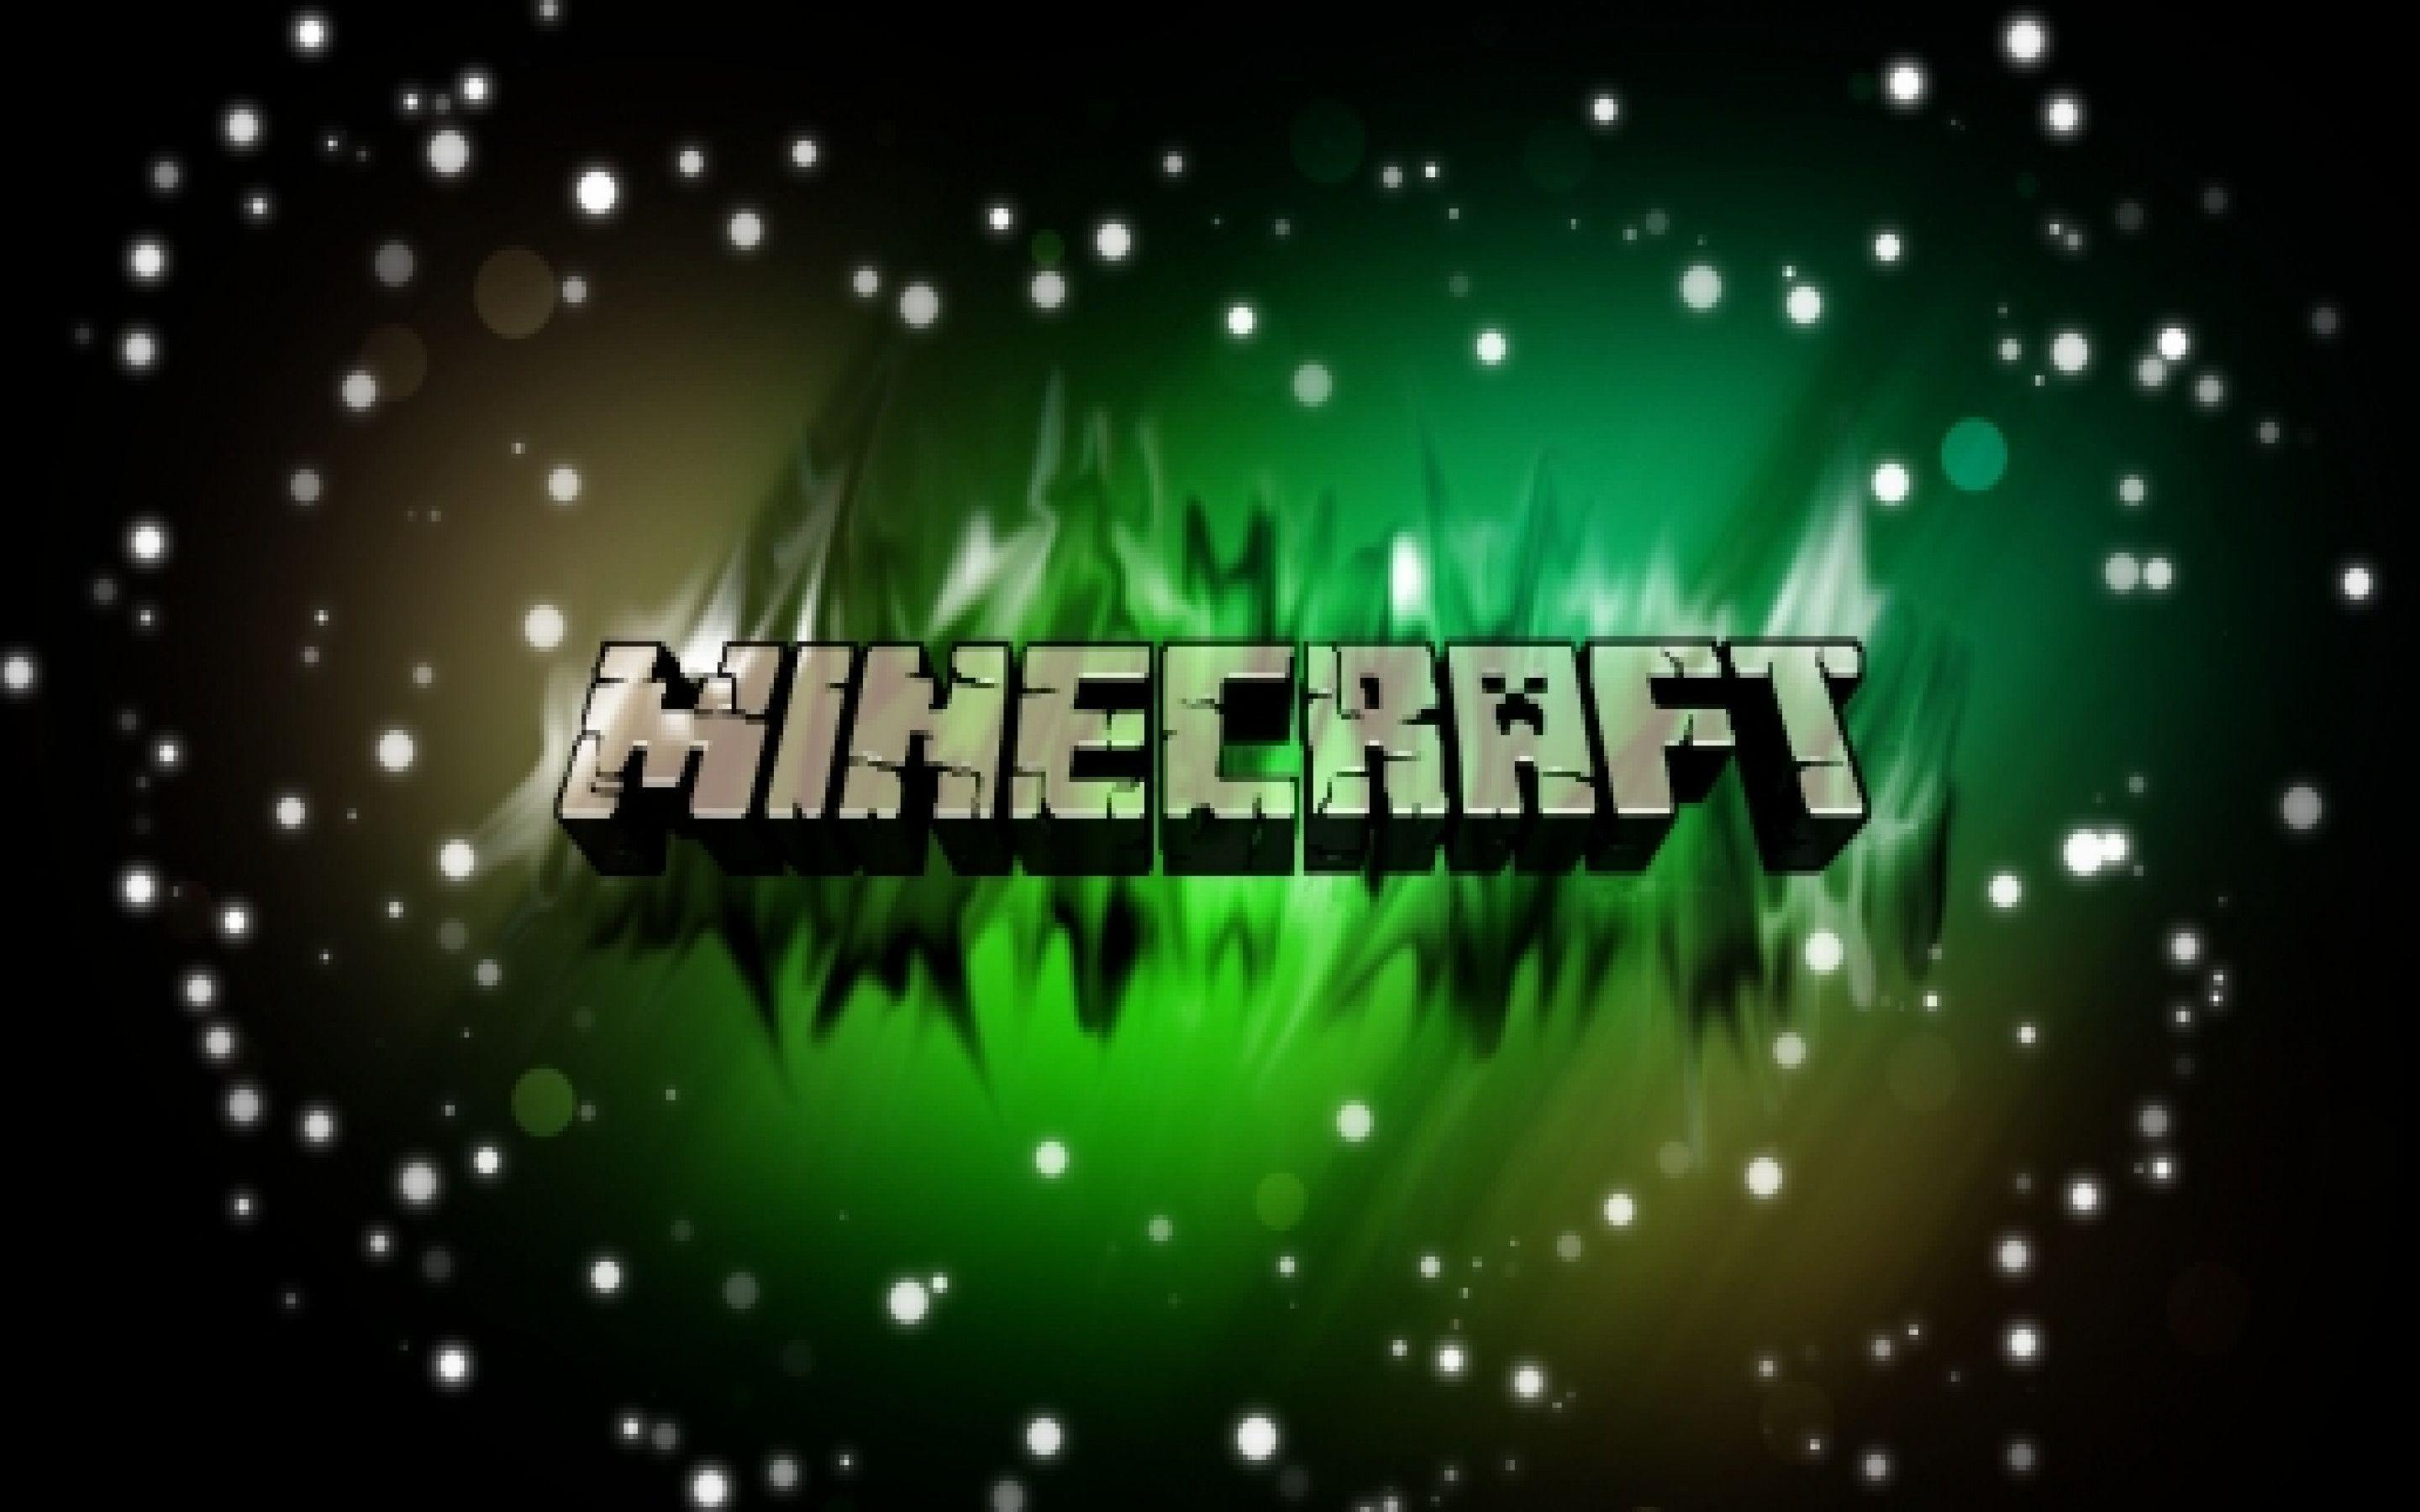 wallpaper hd minecraft green - photo #15